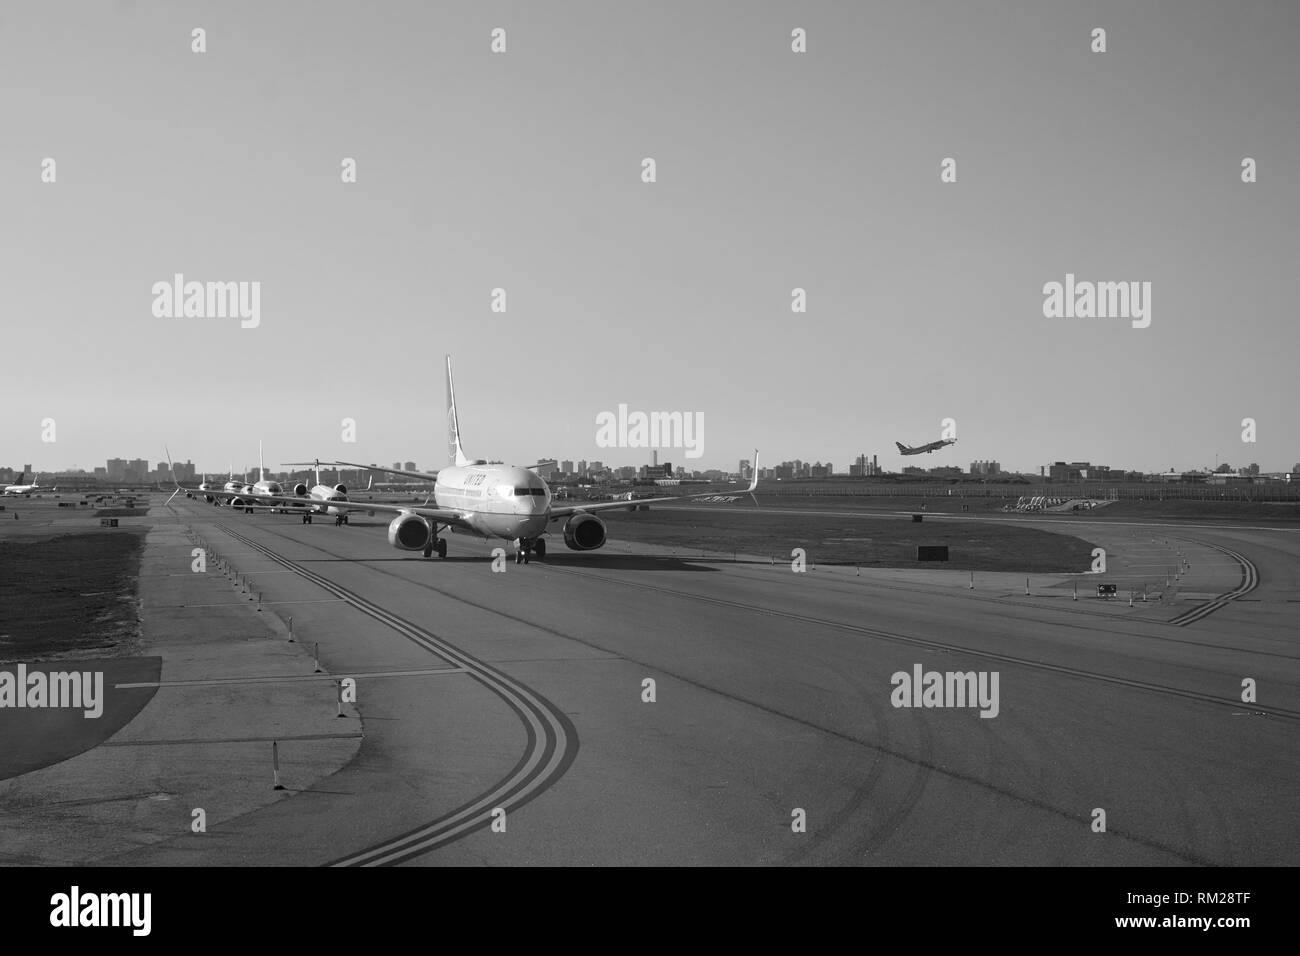 NEW YORK - APRIL 05, 2016: planes line up at LaGuardia Airport. LaGuardia Airport is an international airport located in the northern part of Queens,  - Stock Image